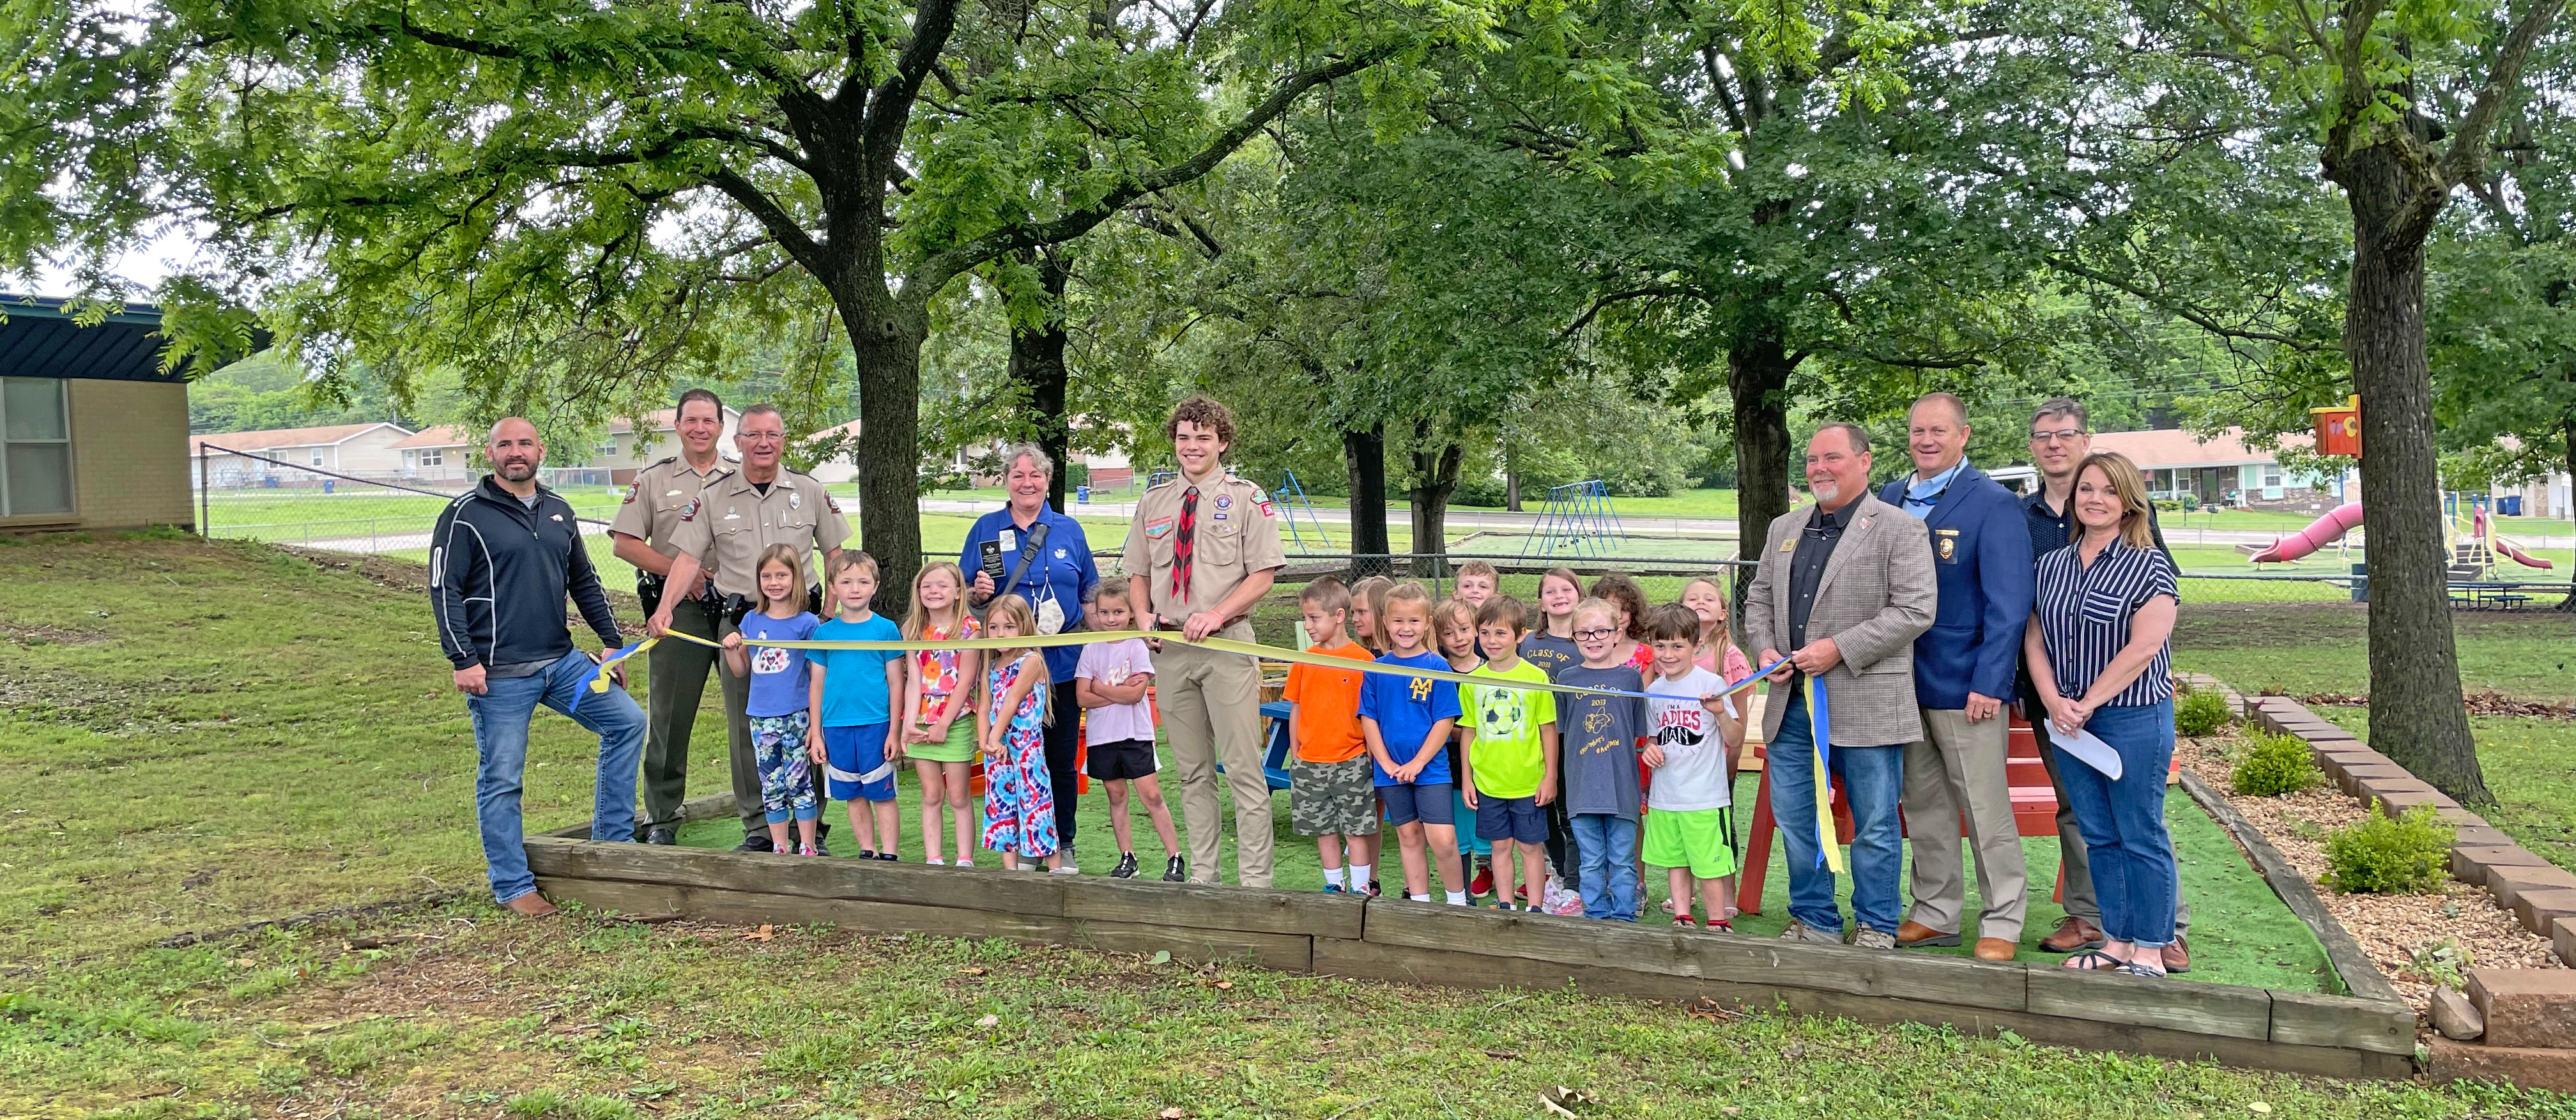 boy scout poses with students near outdoor classroom at MHK.